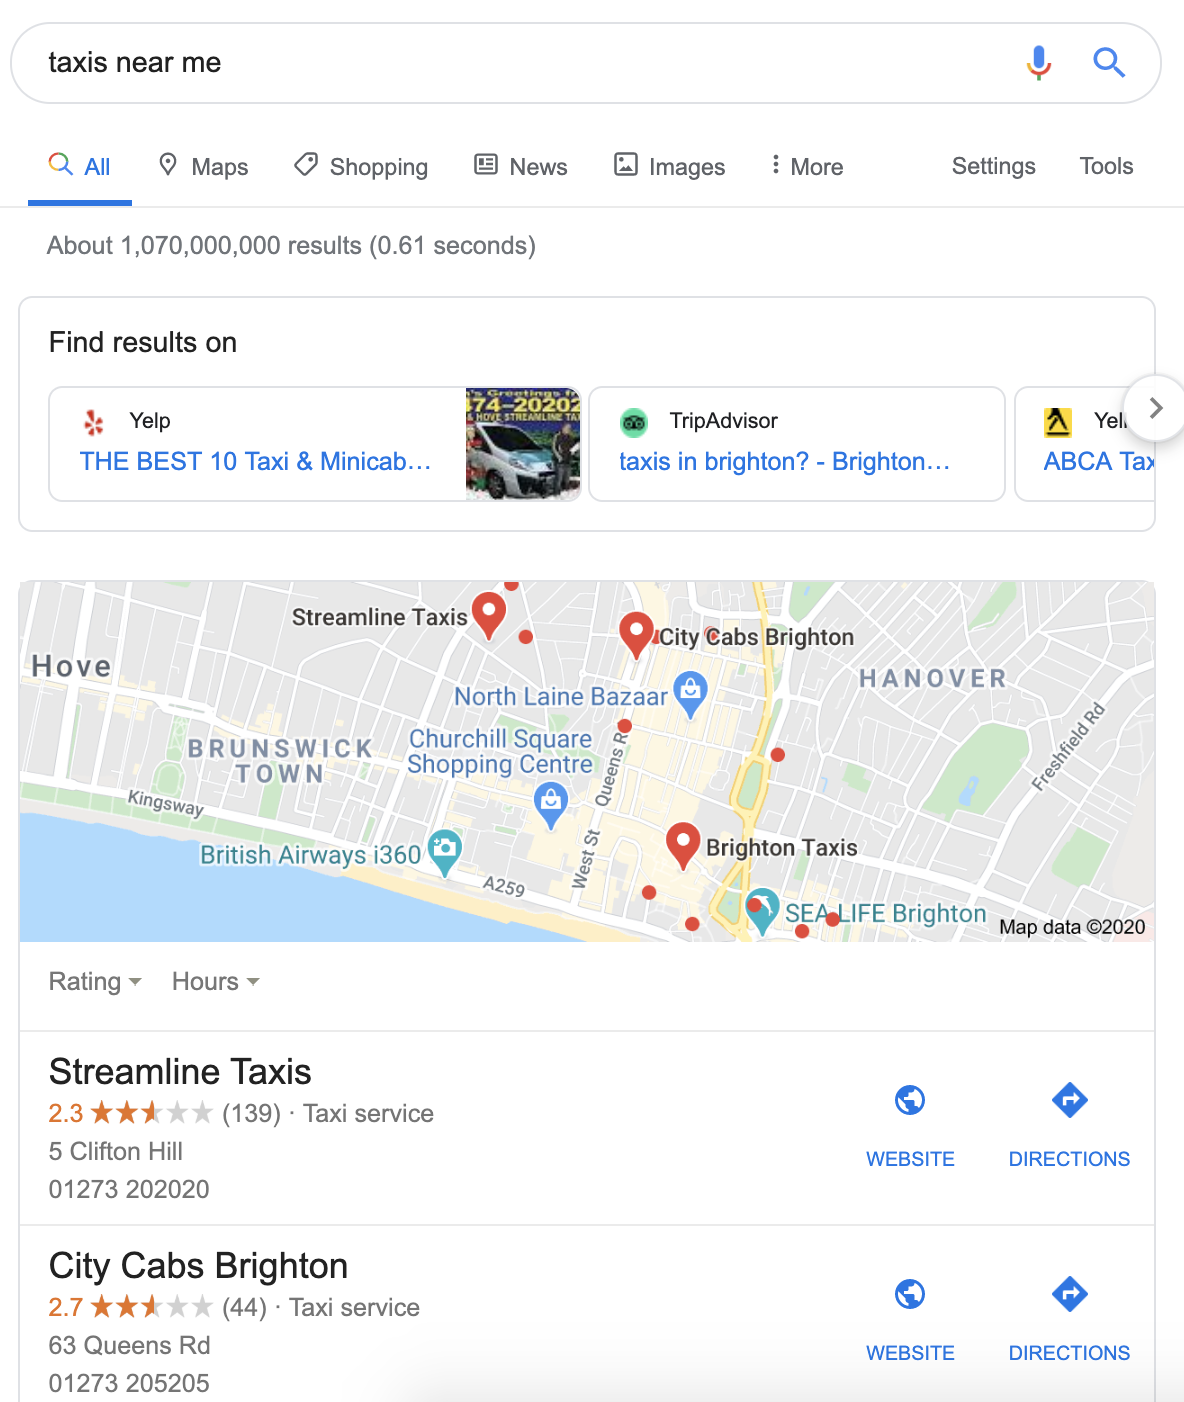 Taxis near me SERP result